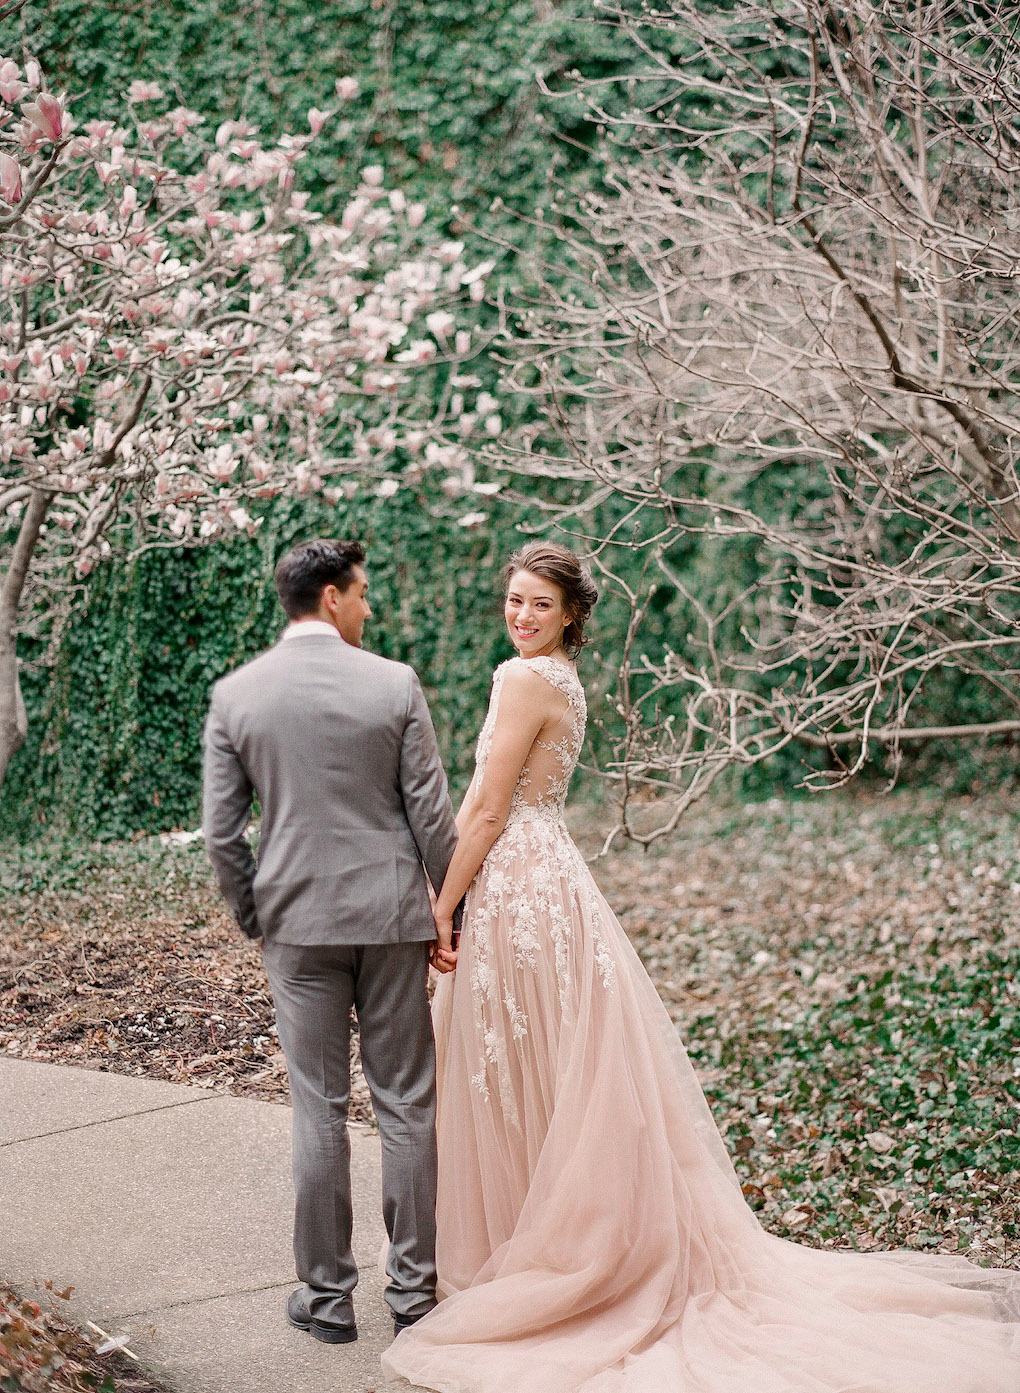 Bride and groom in blush wedding dress:Soft and Subtle Palettes of Spring Blossoms | Editorial Shoot at The Renaissance Pittsburgh by Exhale Events. See more inspiration at exhale-events.com!